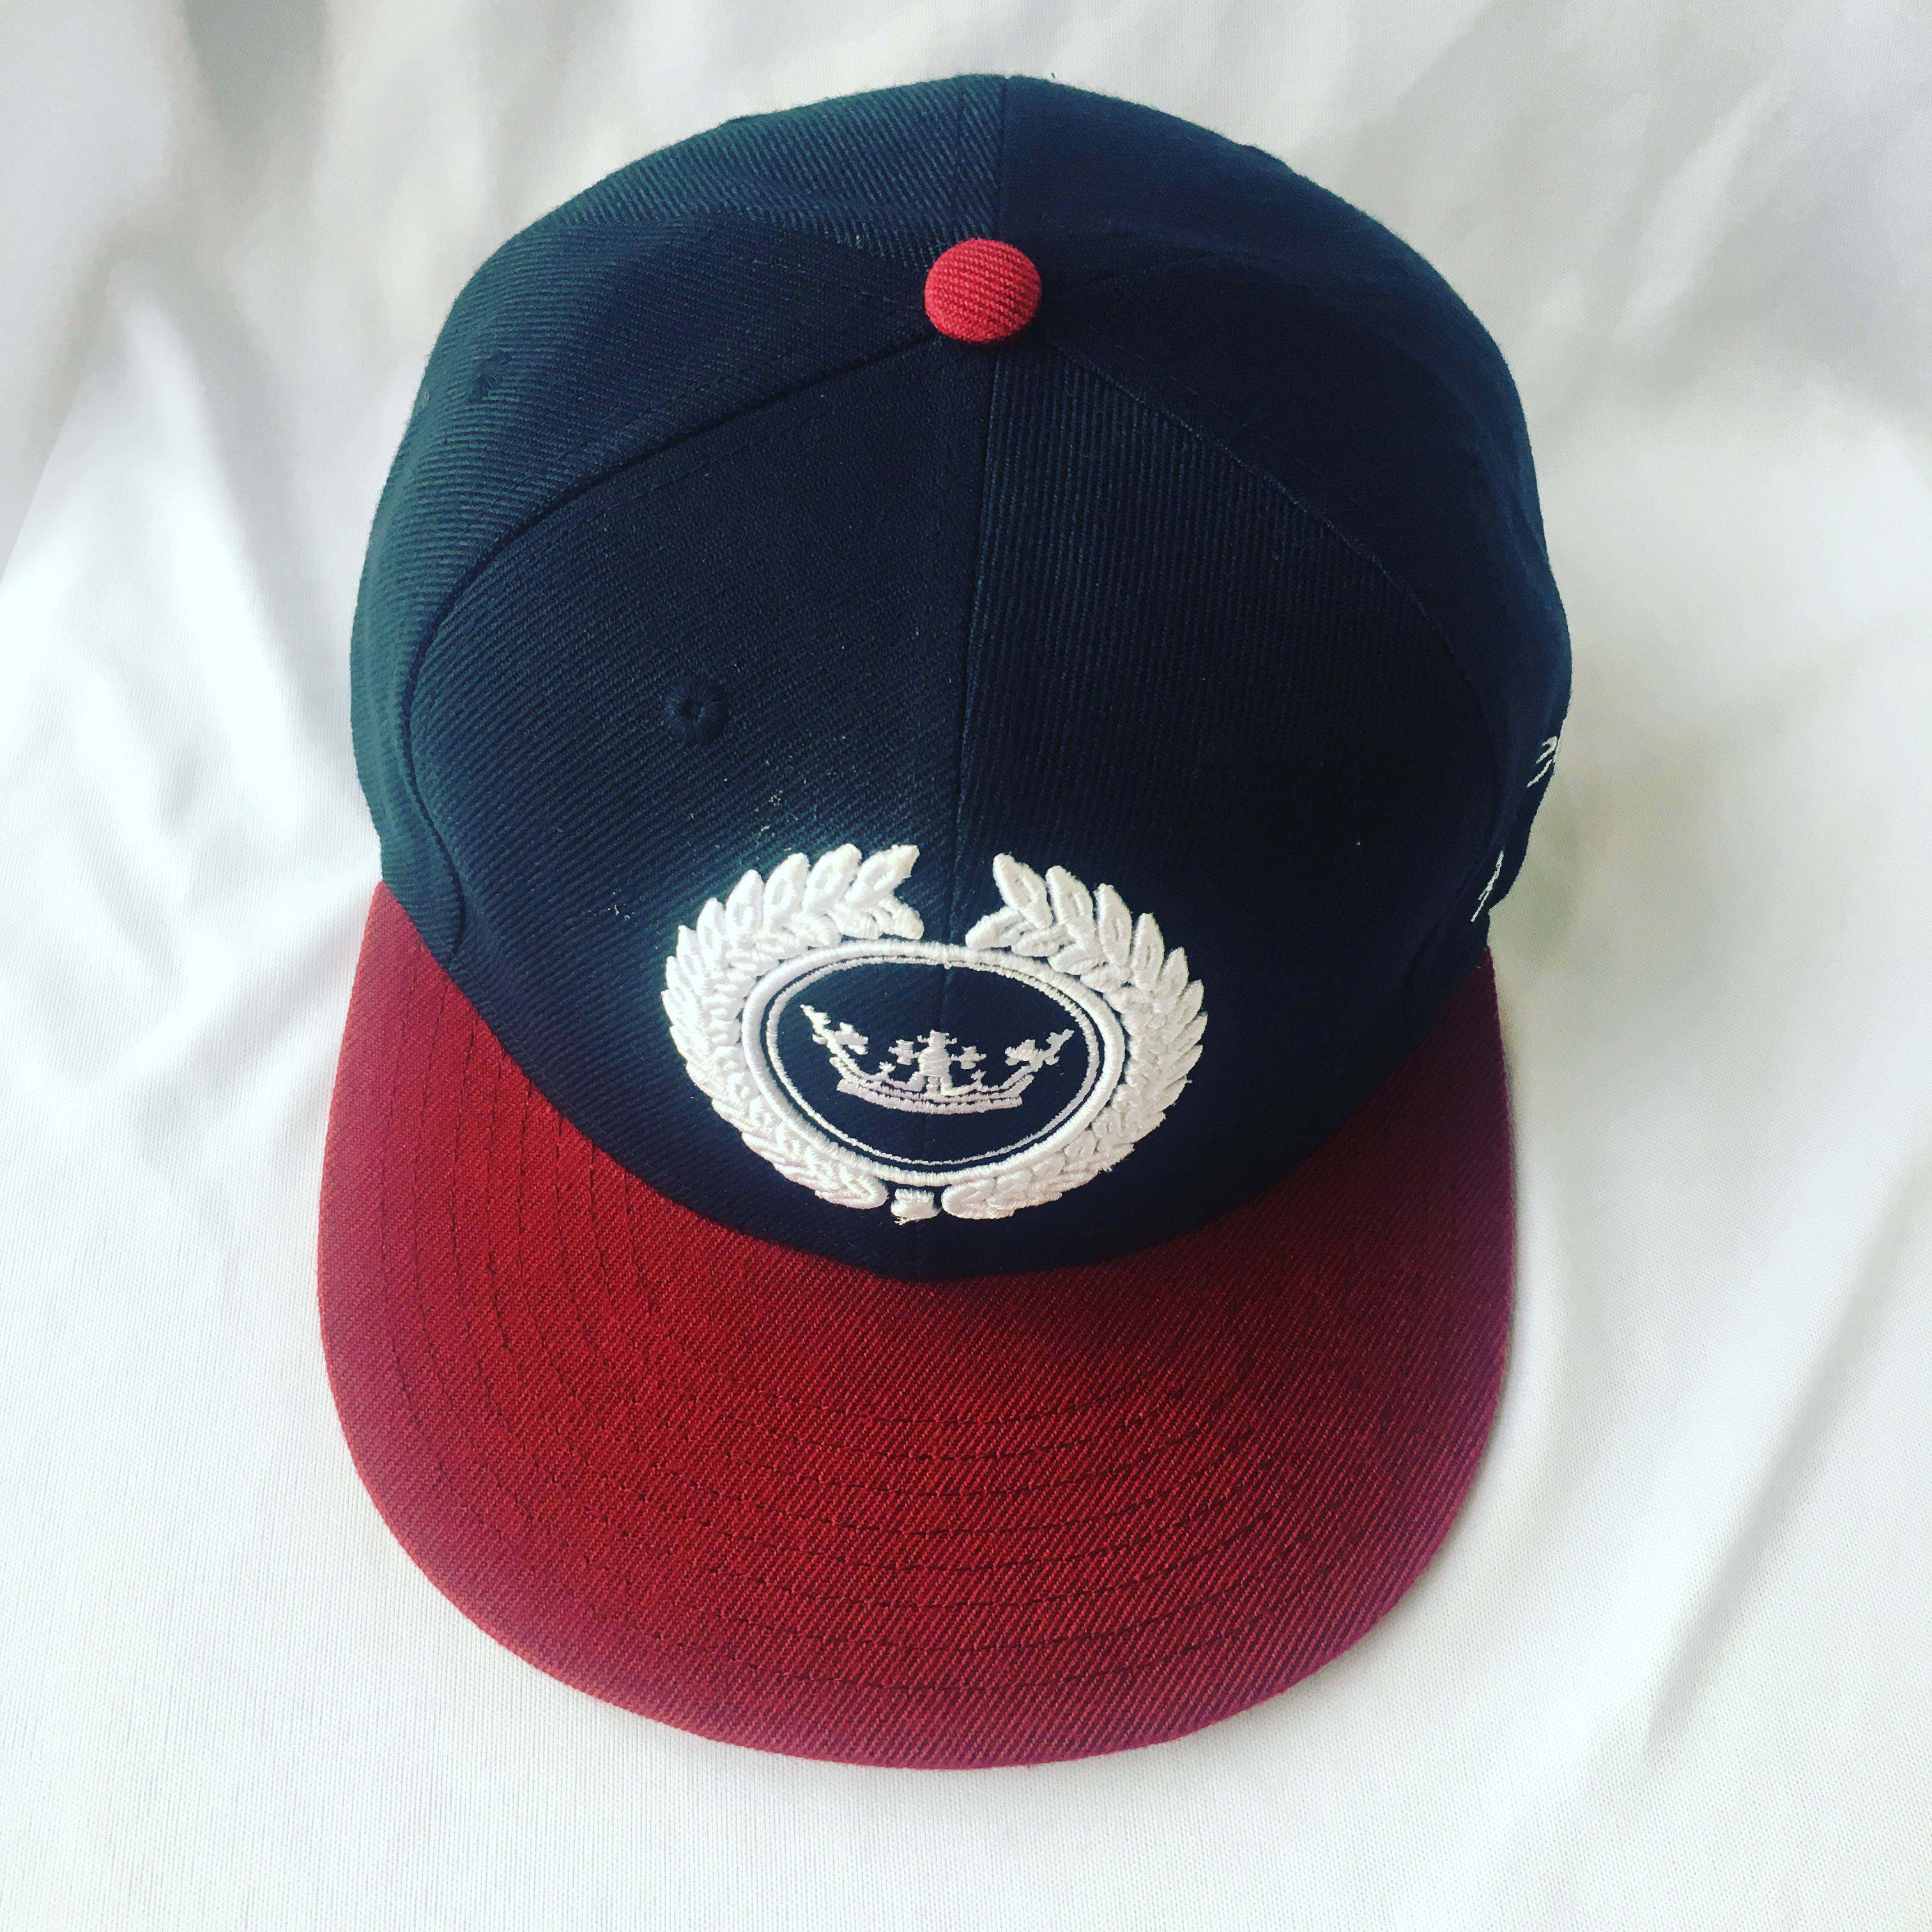 ca30032f70c Custom Embroidered Baseball Hats Caps Manufacturer Zycaps